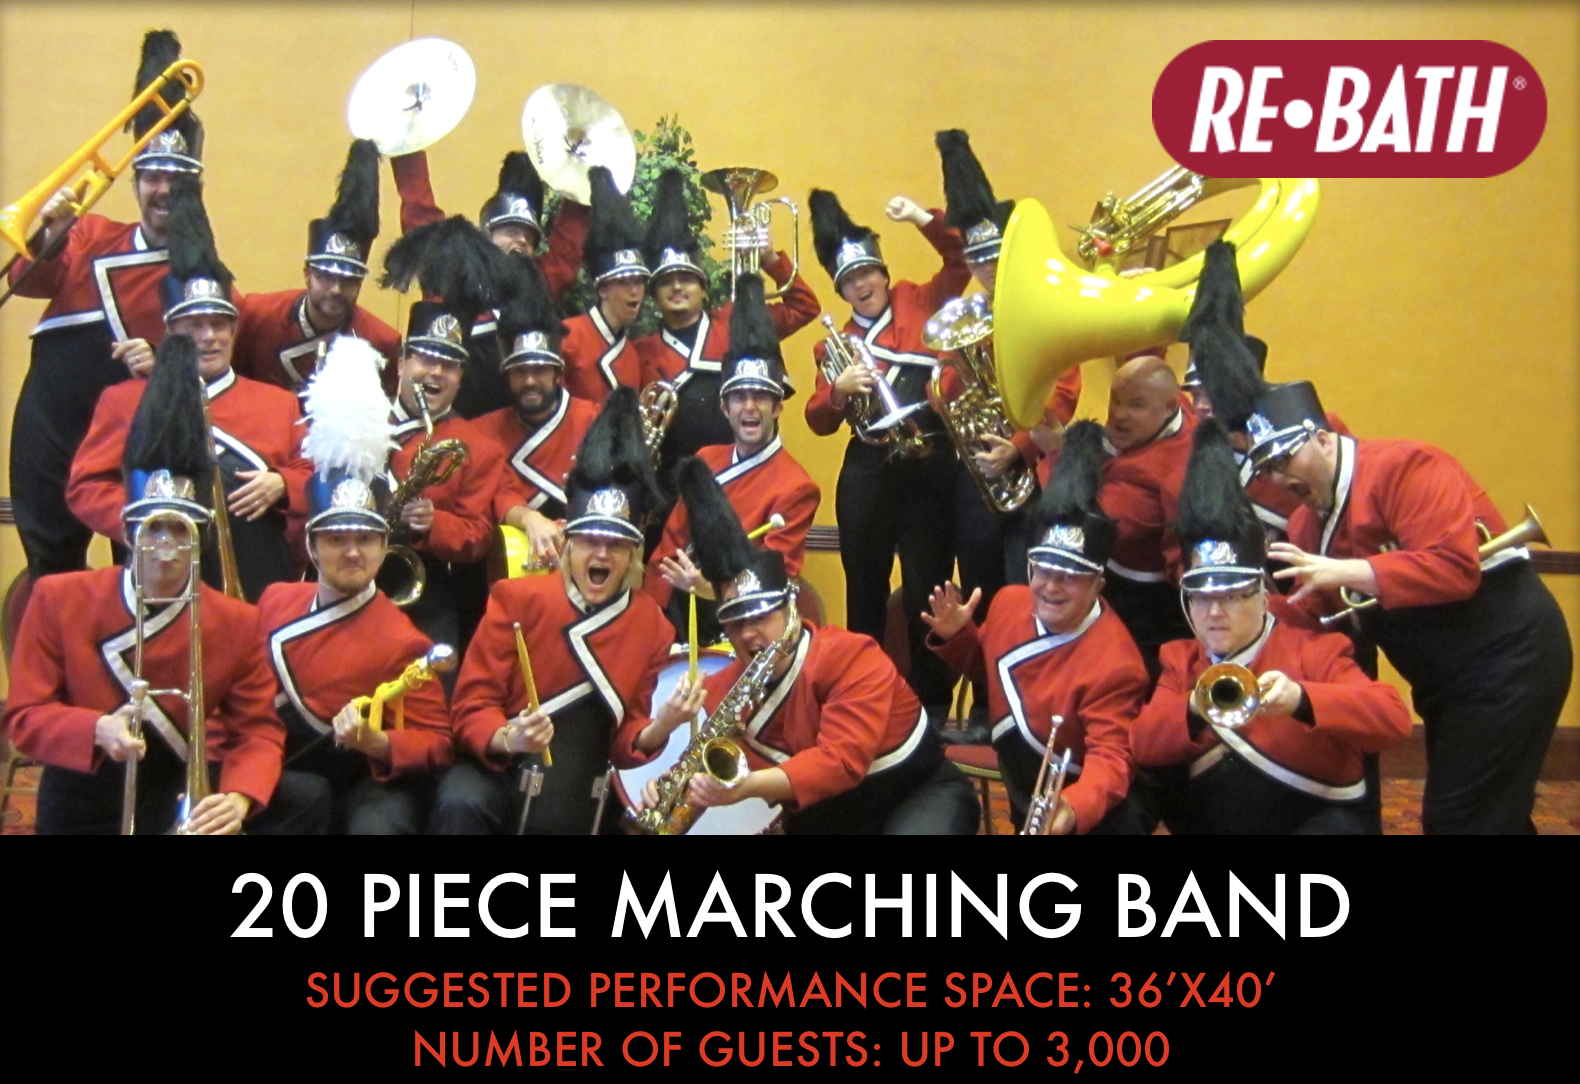 20 piece Marching Band